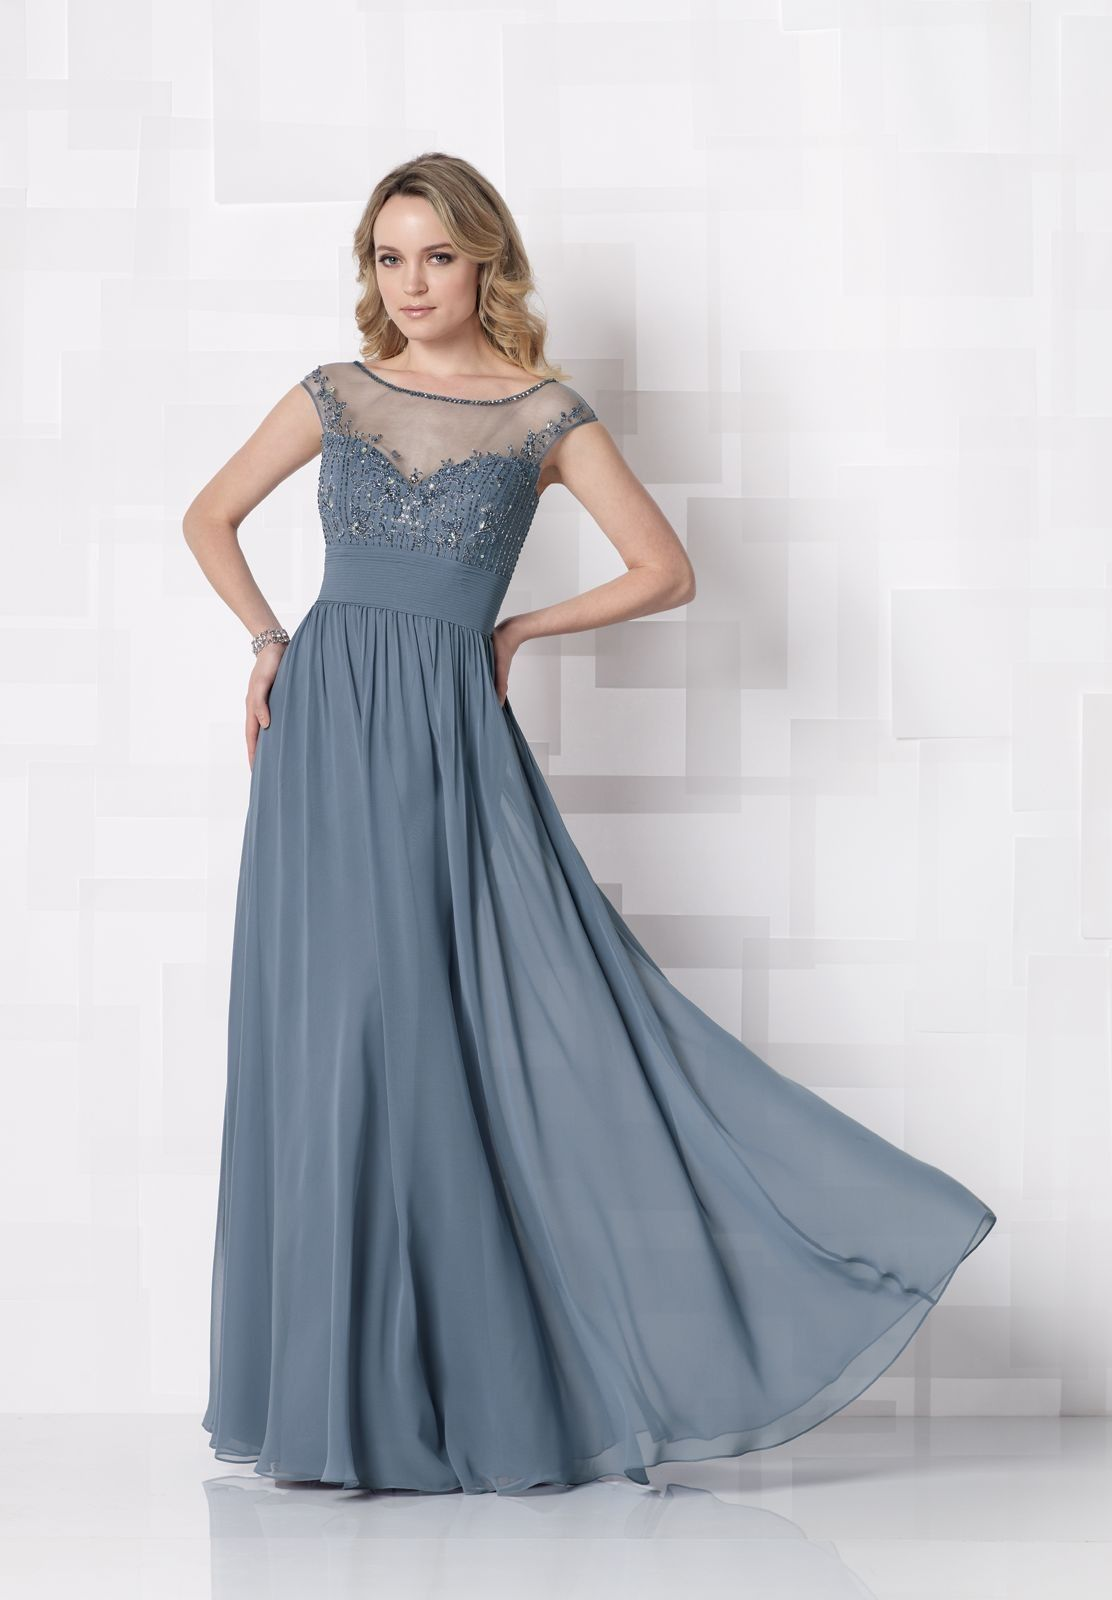 Chiffon Sweetheart A Line Elegant Long Mother Of The Bride Dress With Hand Beaded Illusion Neckline Whiteazalea